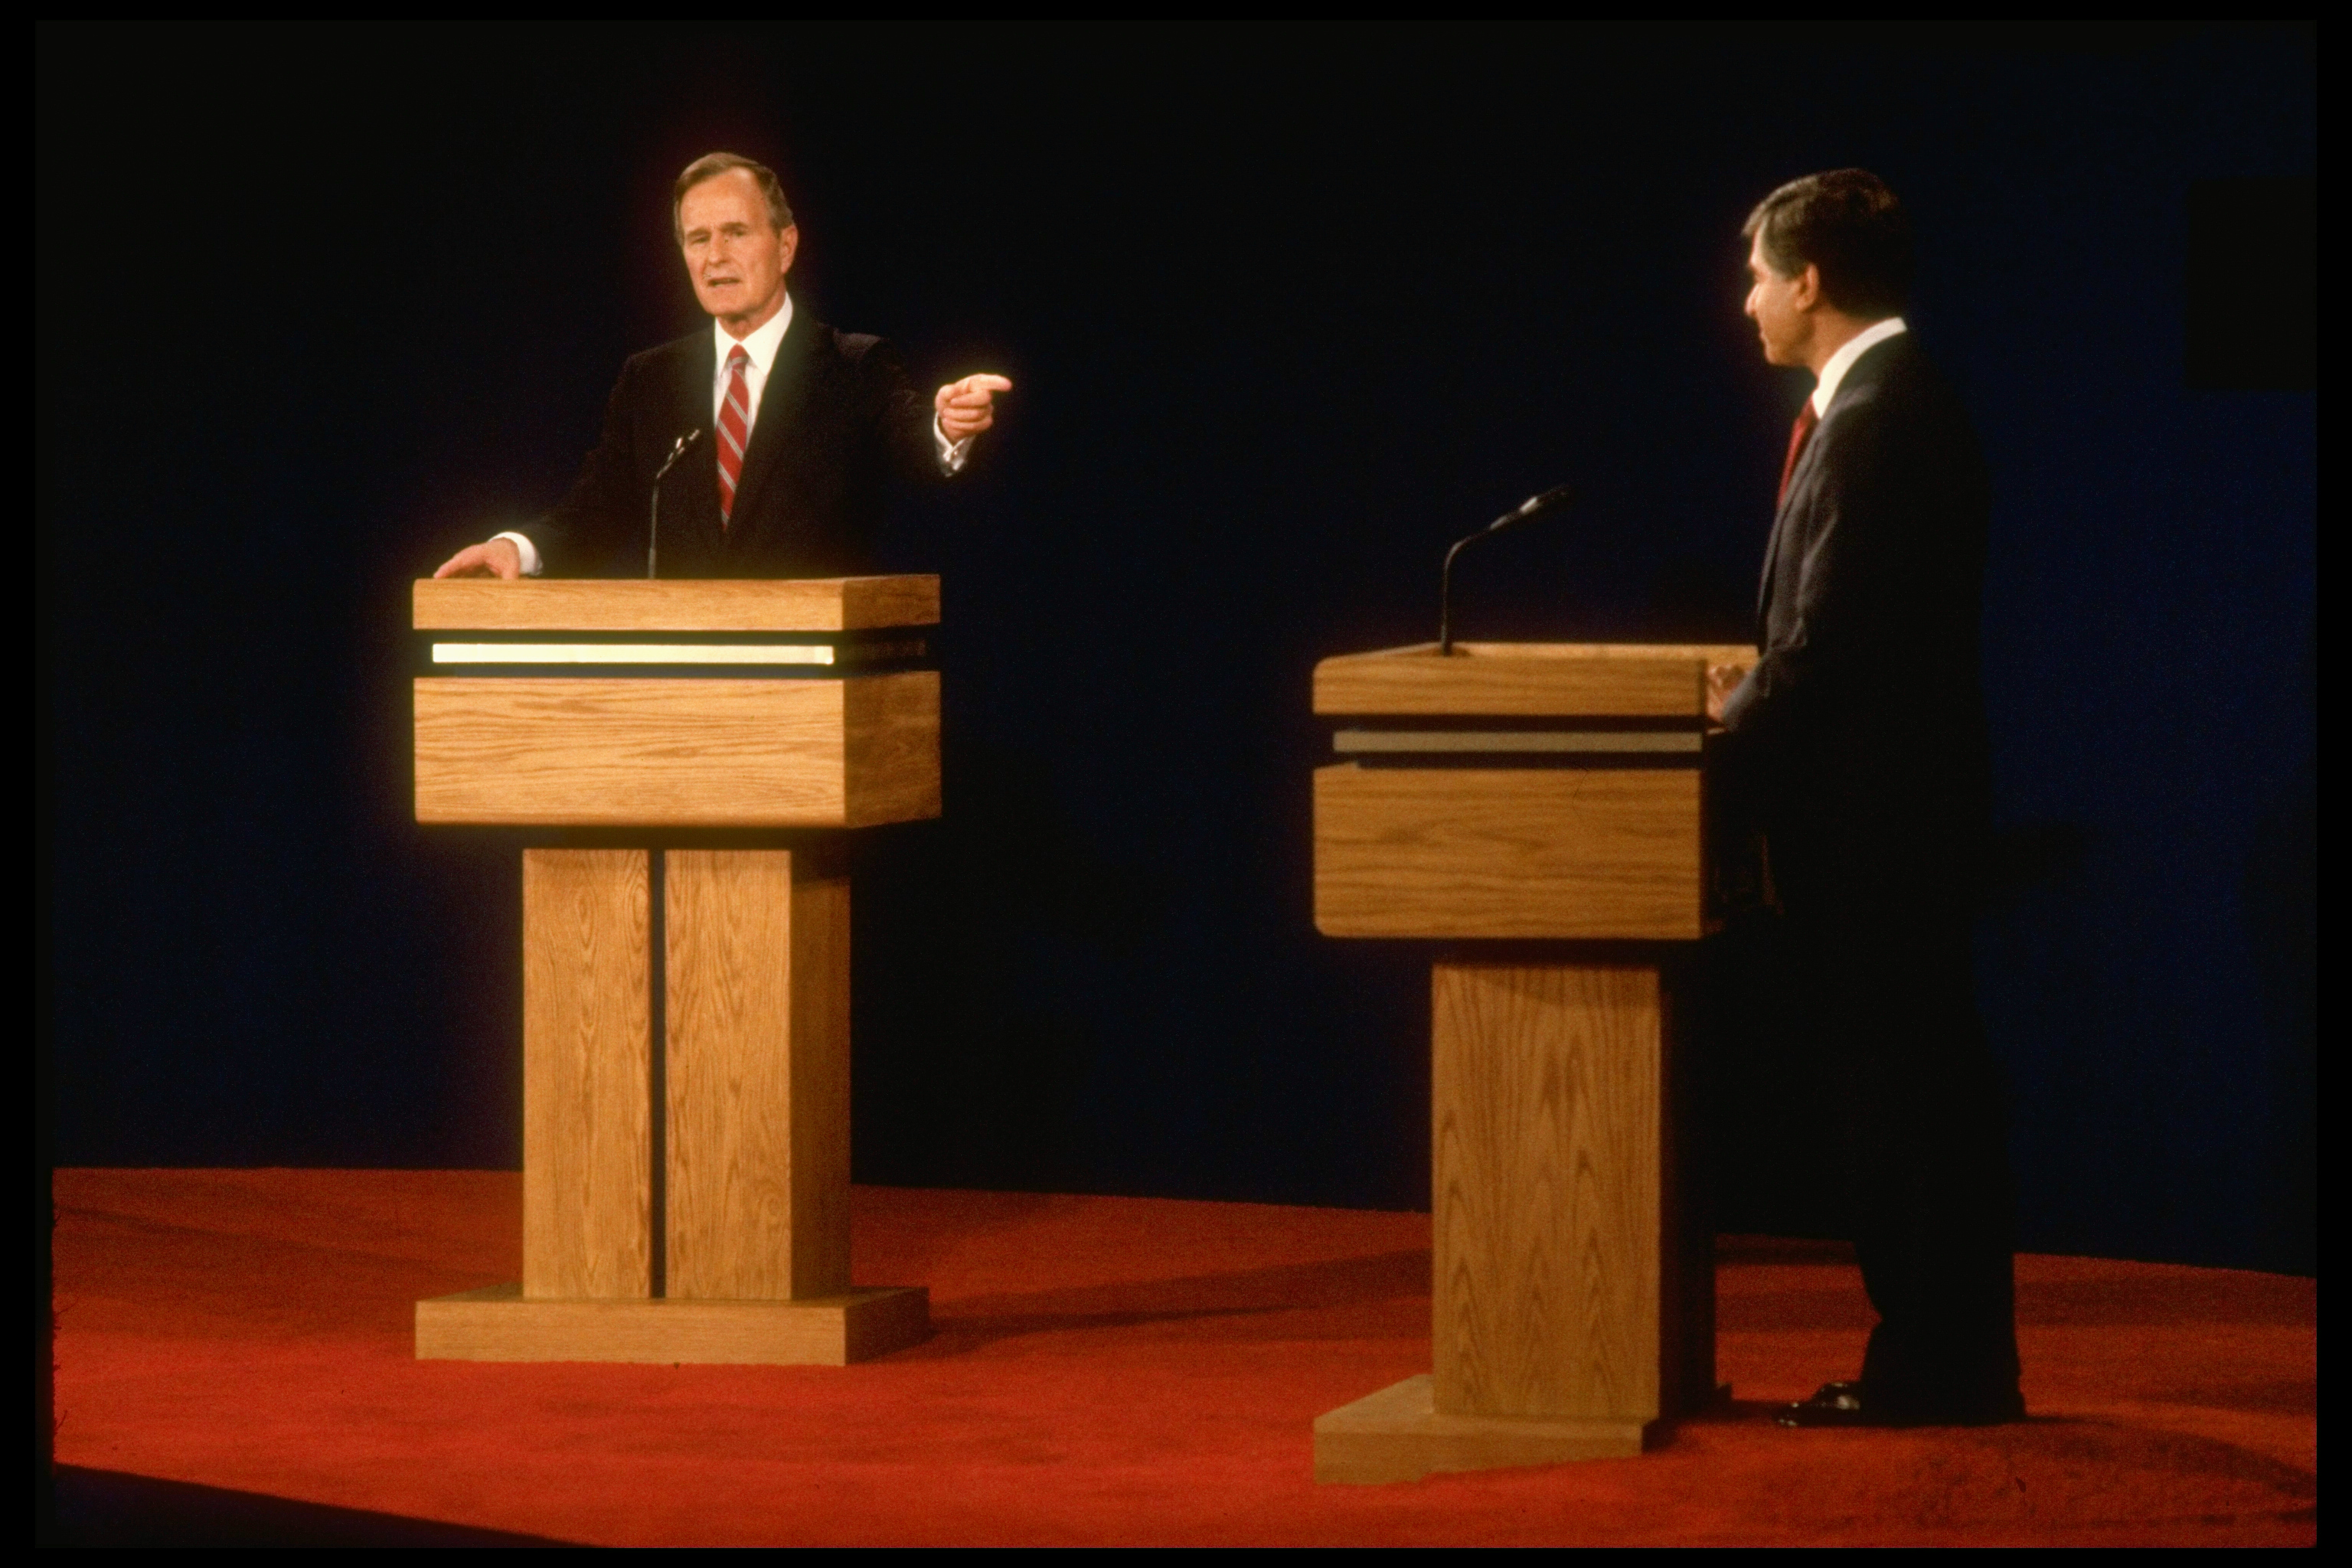 Democratic presidential candidate Michael Dukakis poised podium-side, facing his point-making Republican opponent VP George Bush (L) in first debate.